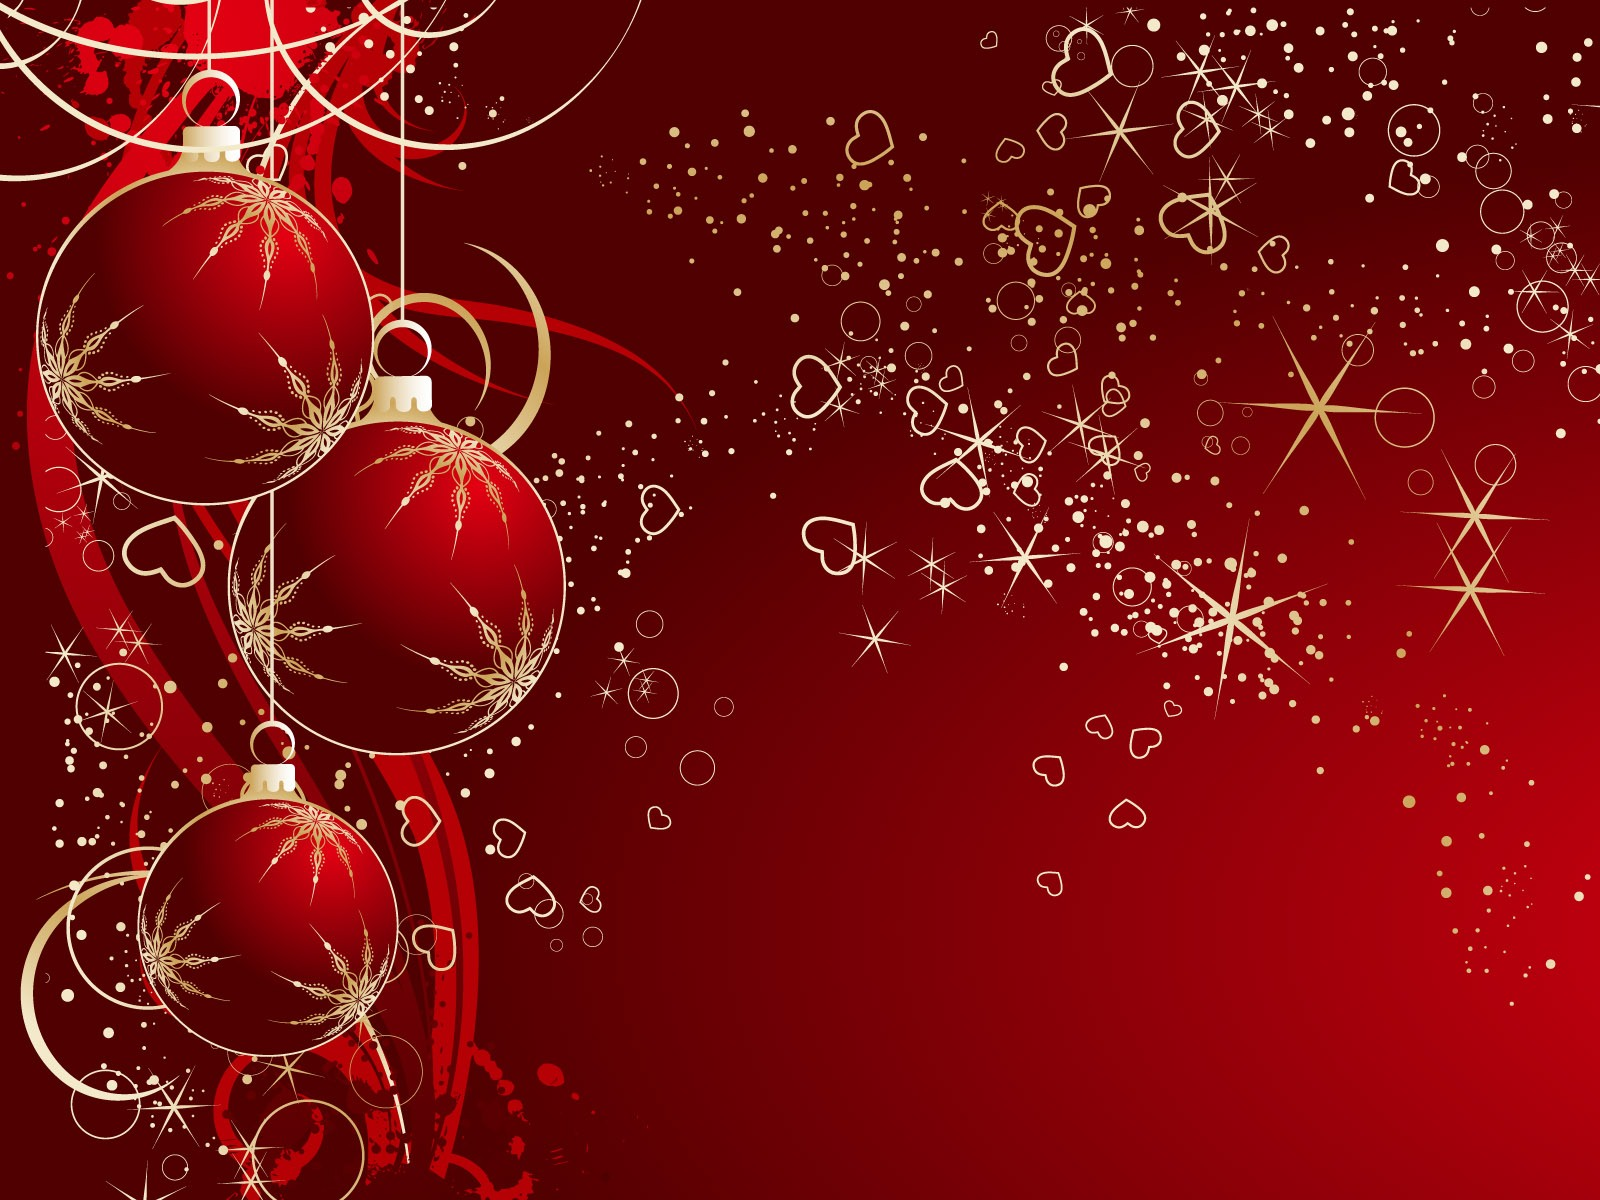 christmas wallpaper hdcomputer wallpaper free wallpaper